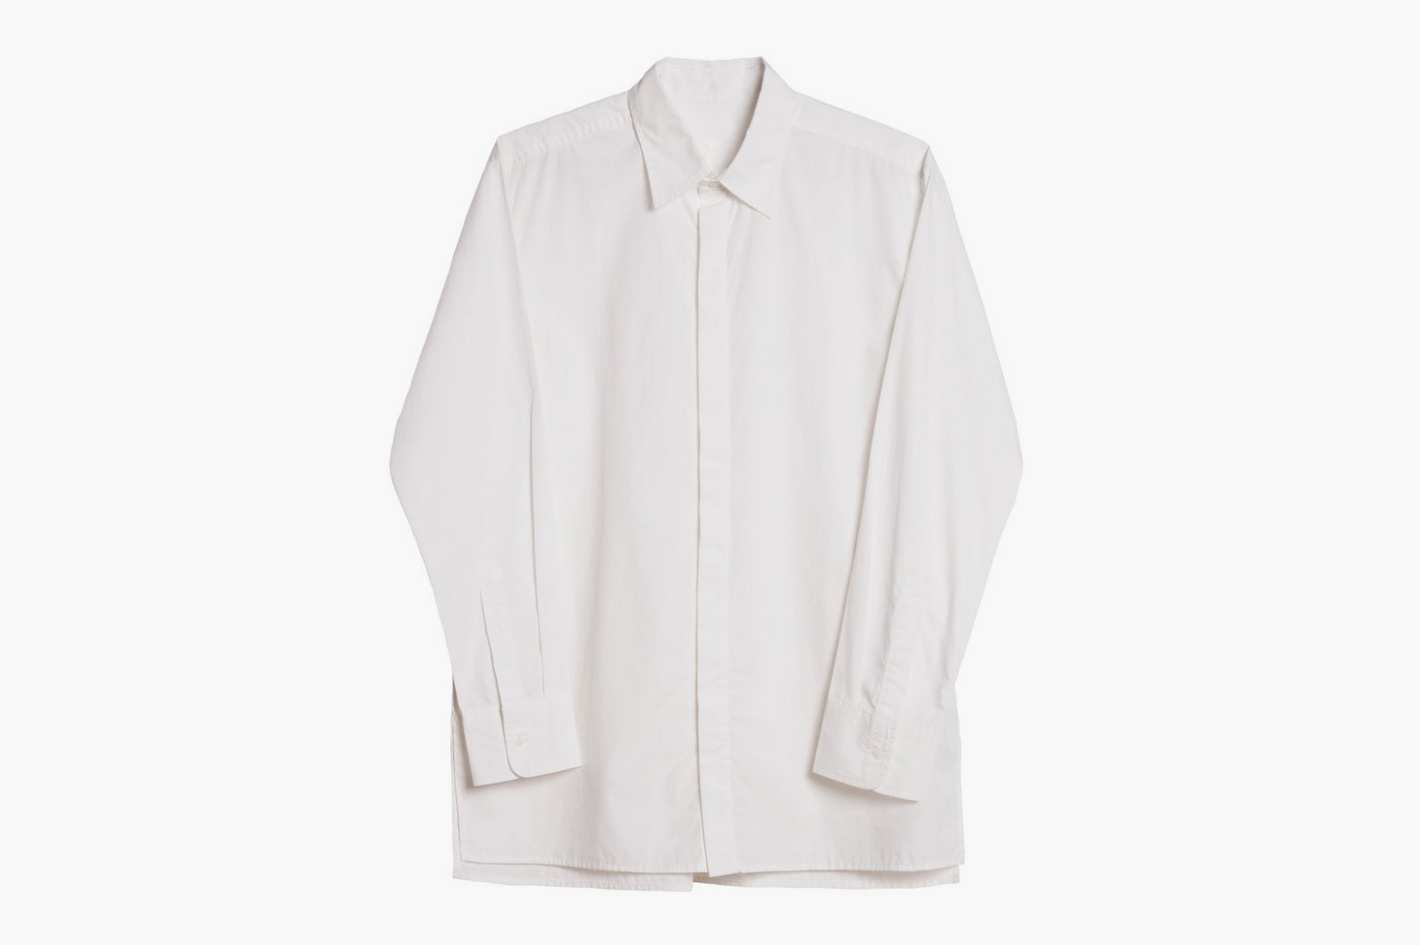 Dockers x Karla Long Sleeve Woven Shirt